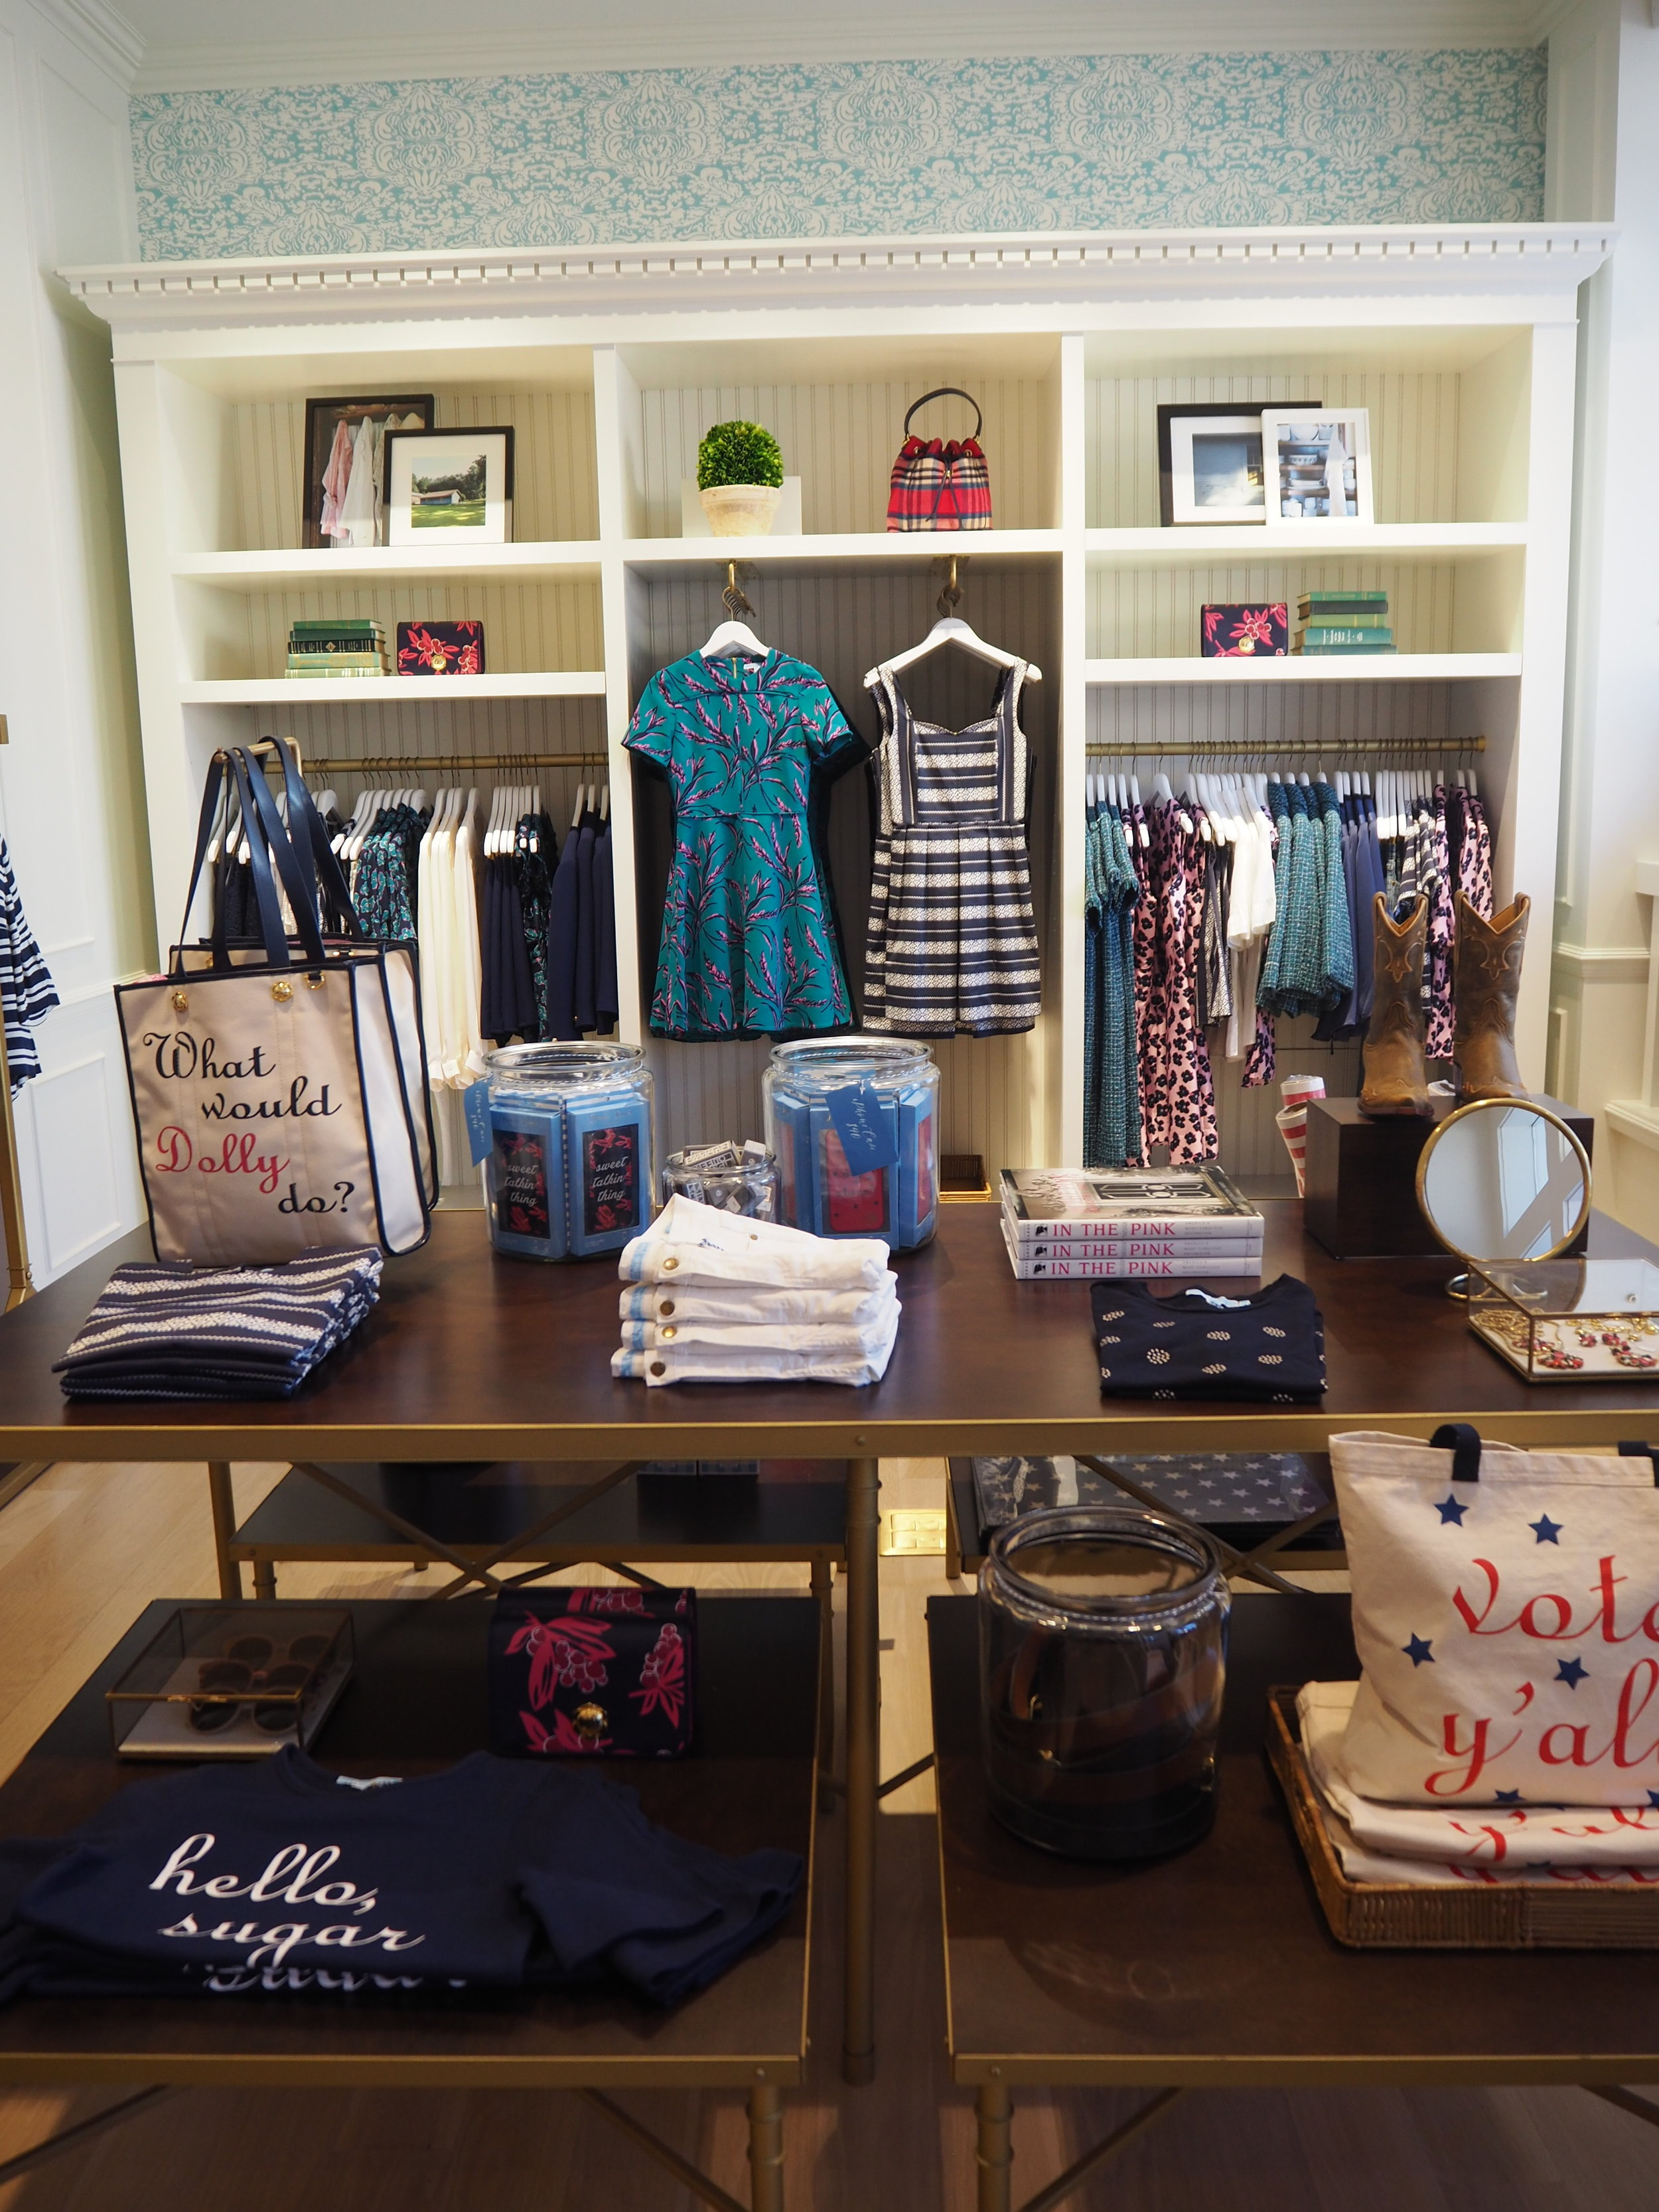 Ladies clothing at the Draper James store in Nashville Tenessee. Kitsch lifestyle brand by Reese Witherspoon. Click here for more info.